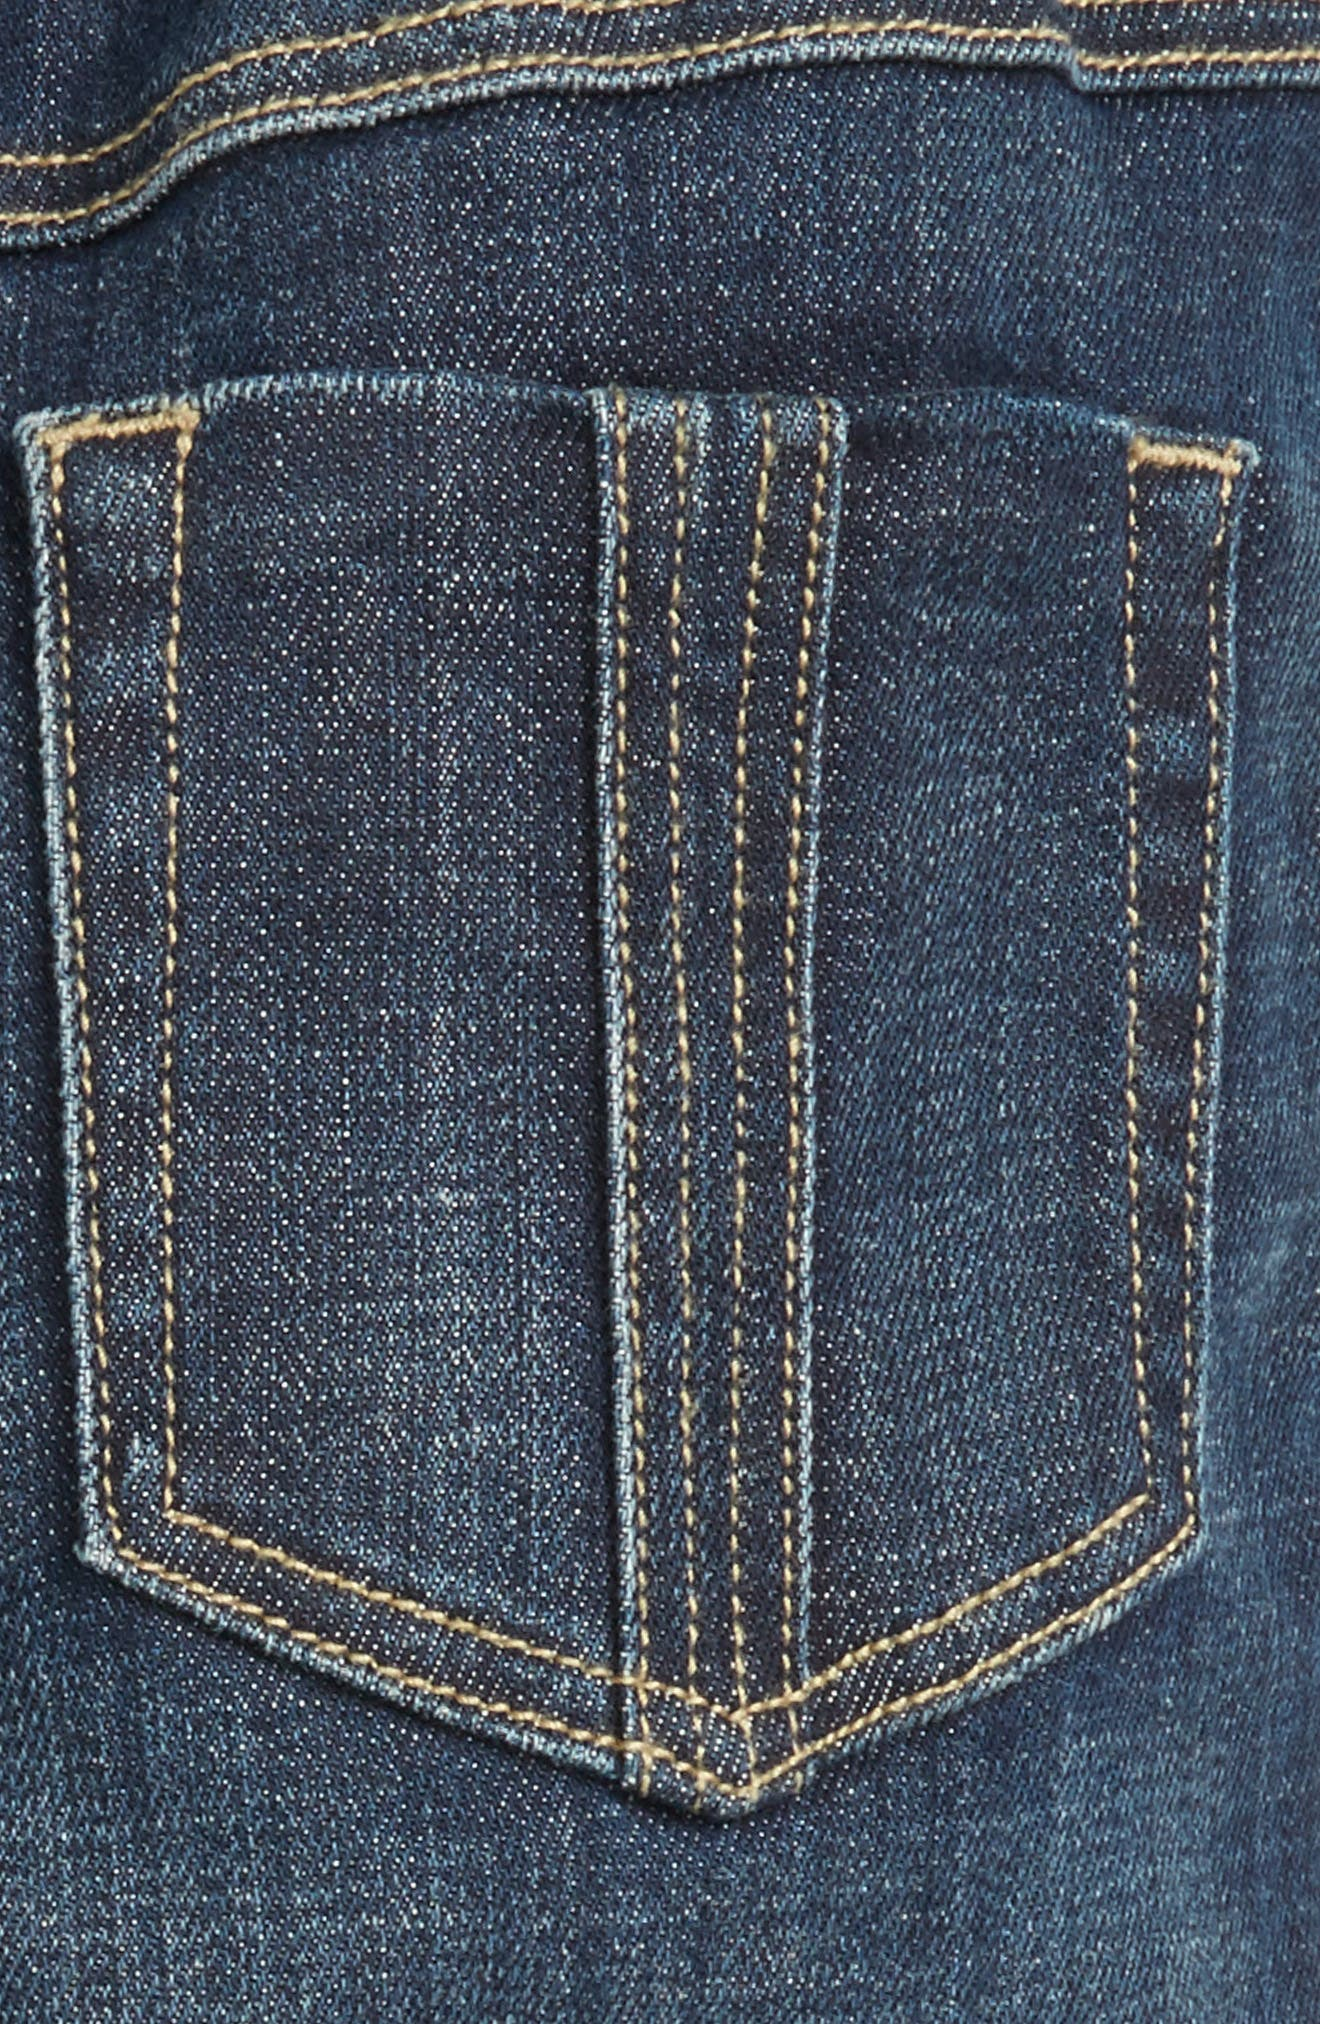 BURBERRY, Pierre Check Lined Jeans, Alternate thumbnail 3, color, 400